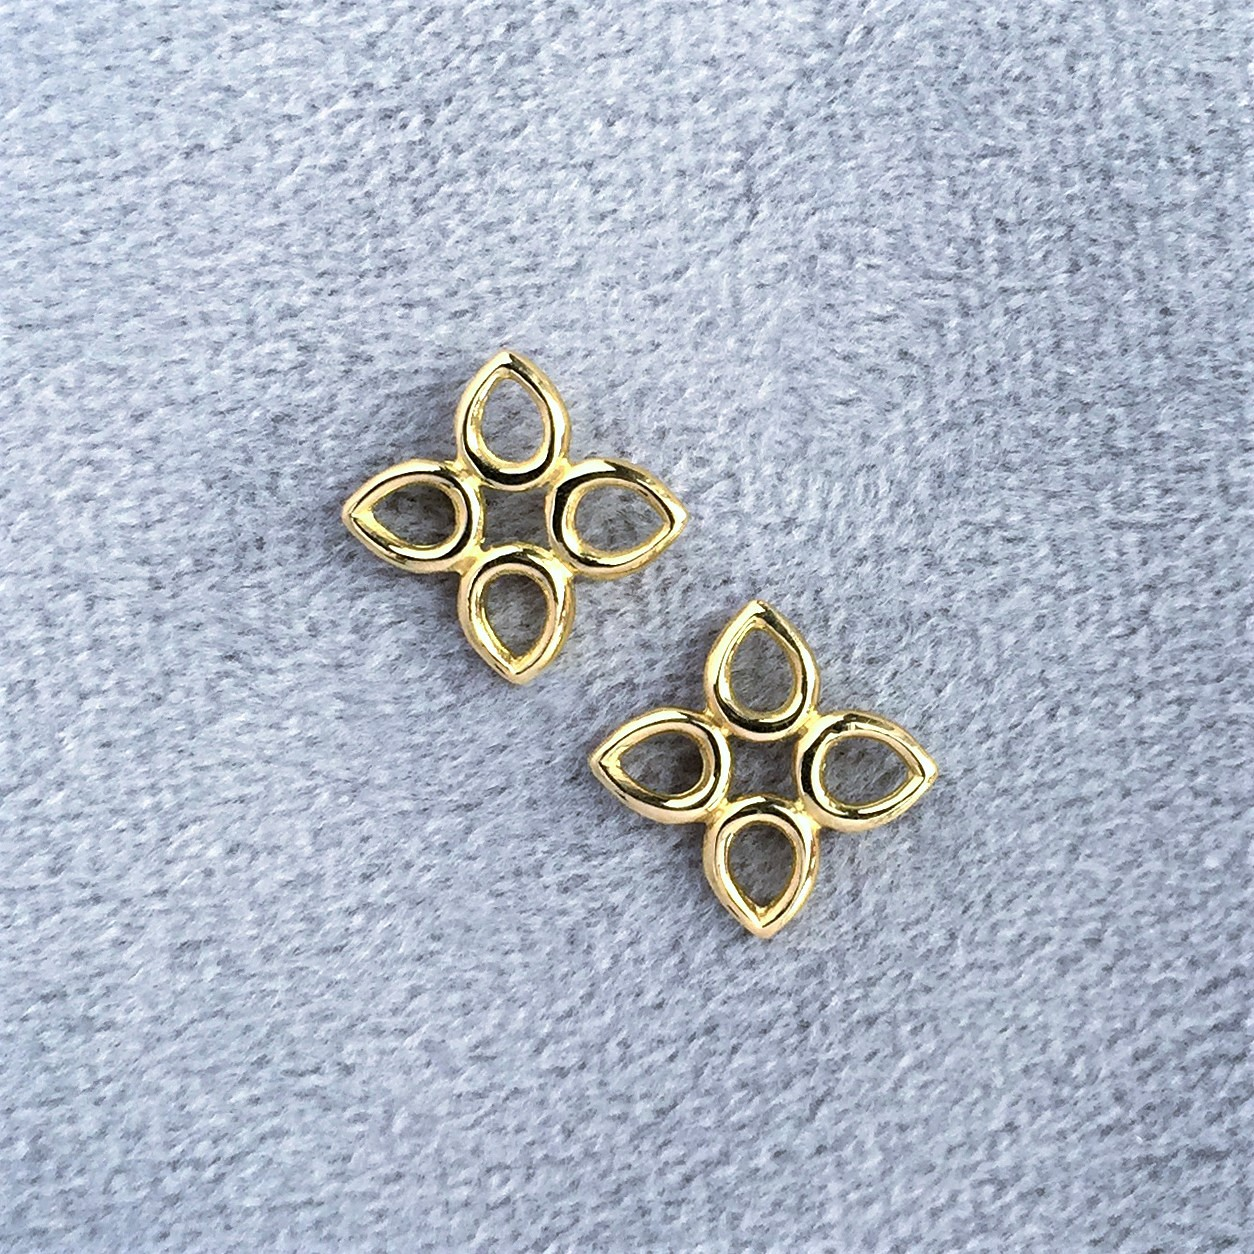 Sevilla motif wire earrings in yellow goldAlso available in sterling silver